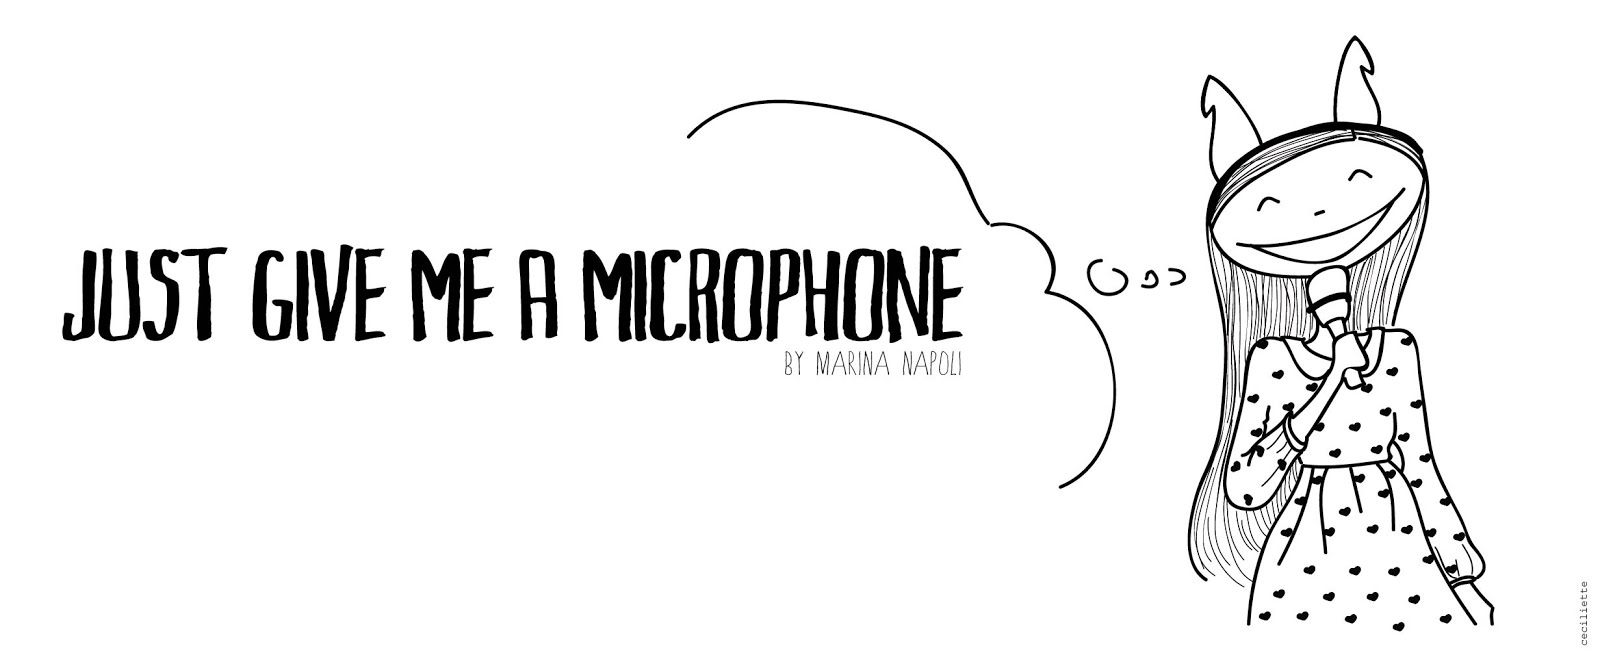 JUST GIVE ME A MICROPHONE!!!